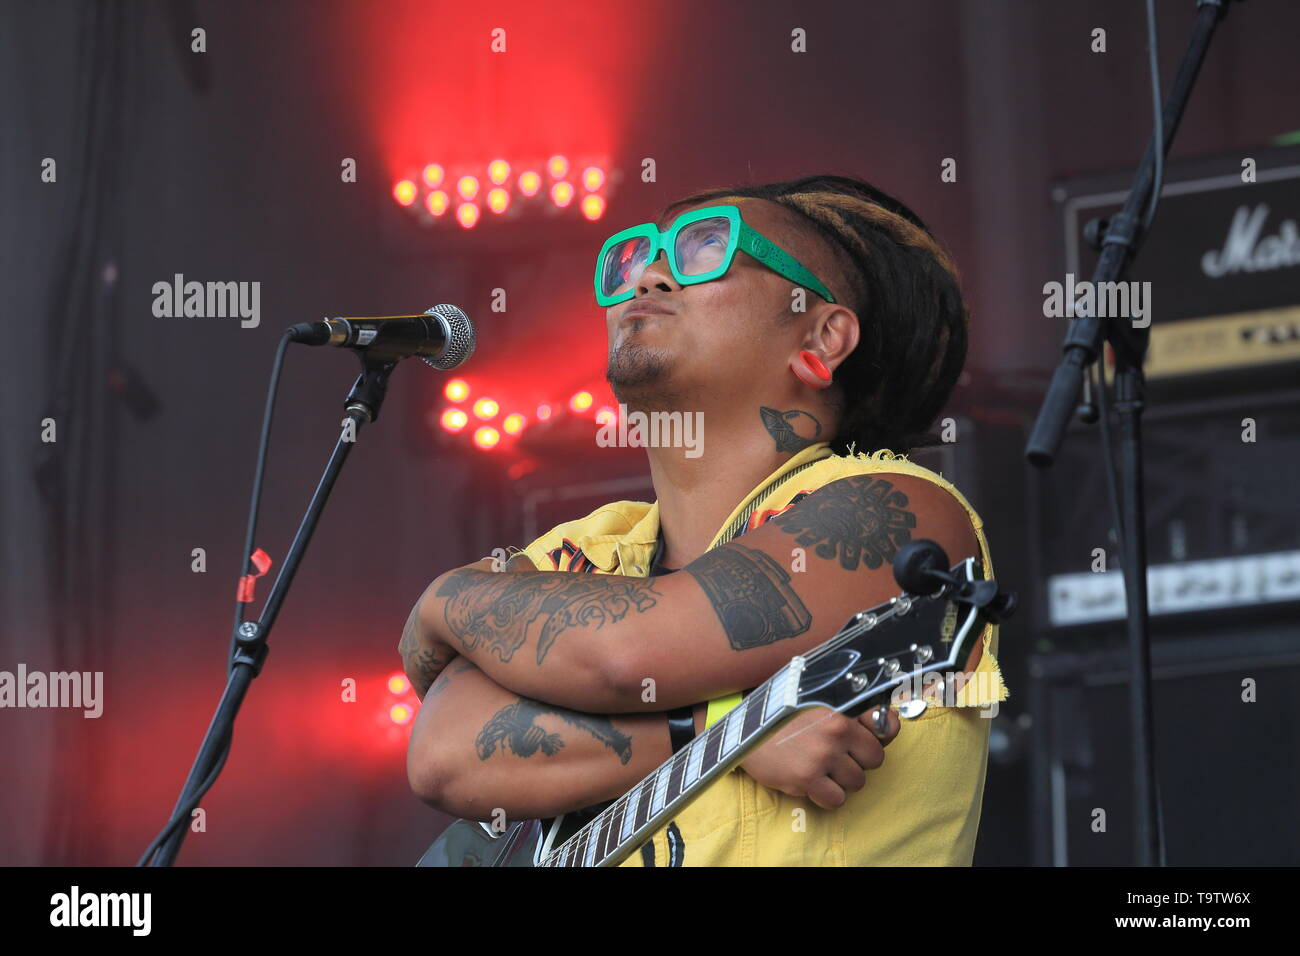 Quebec,Canada. Canadian reggae band Danny Rebel & the KGB perform live on stage during the Pouzza fest in Montreal. - Stock Image